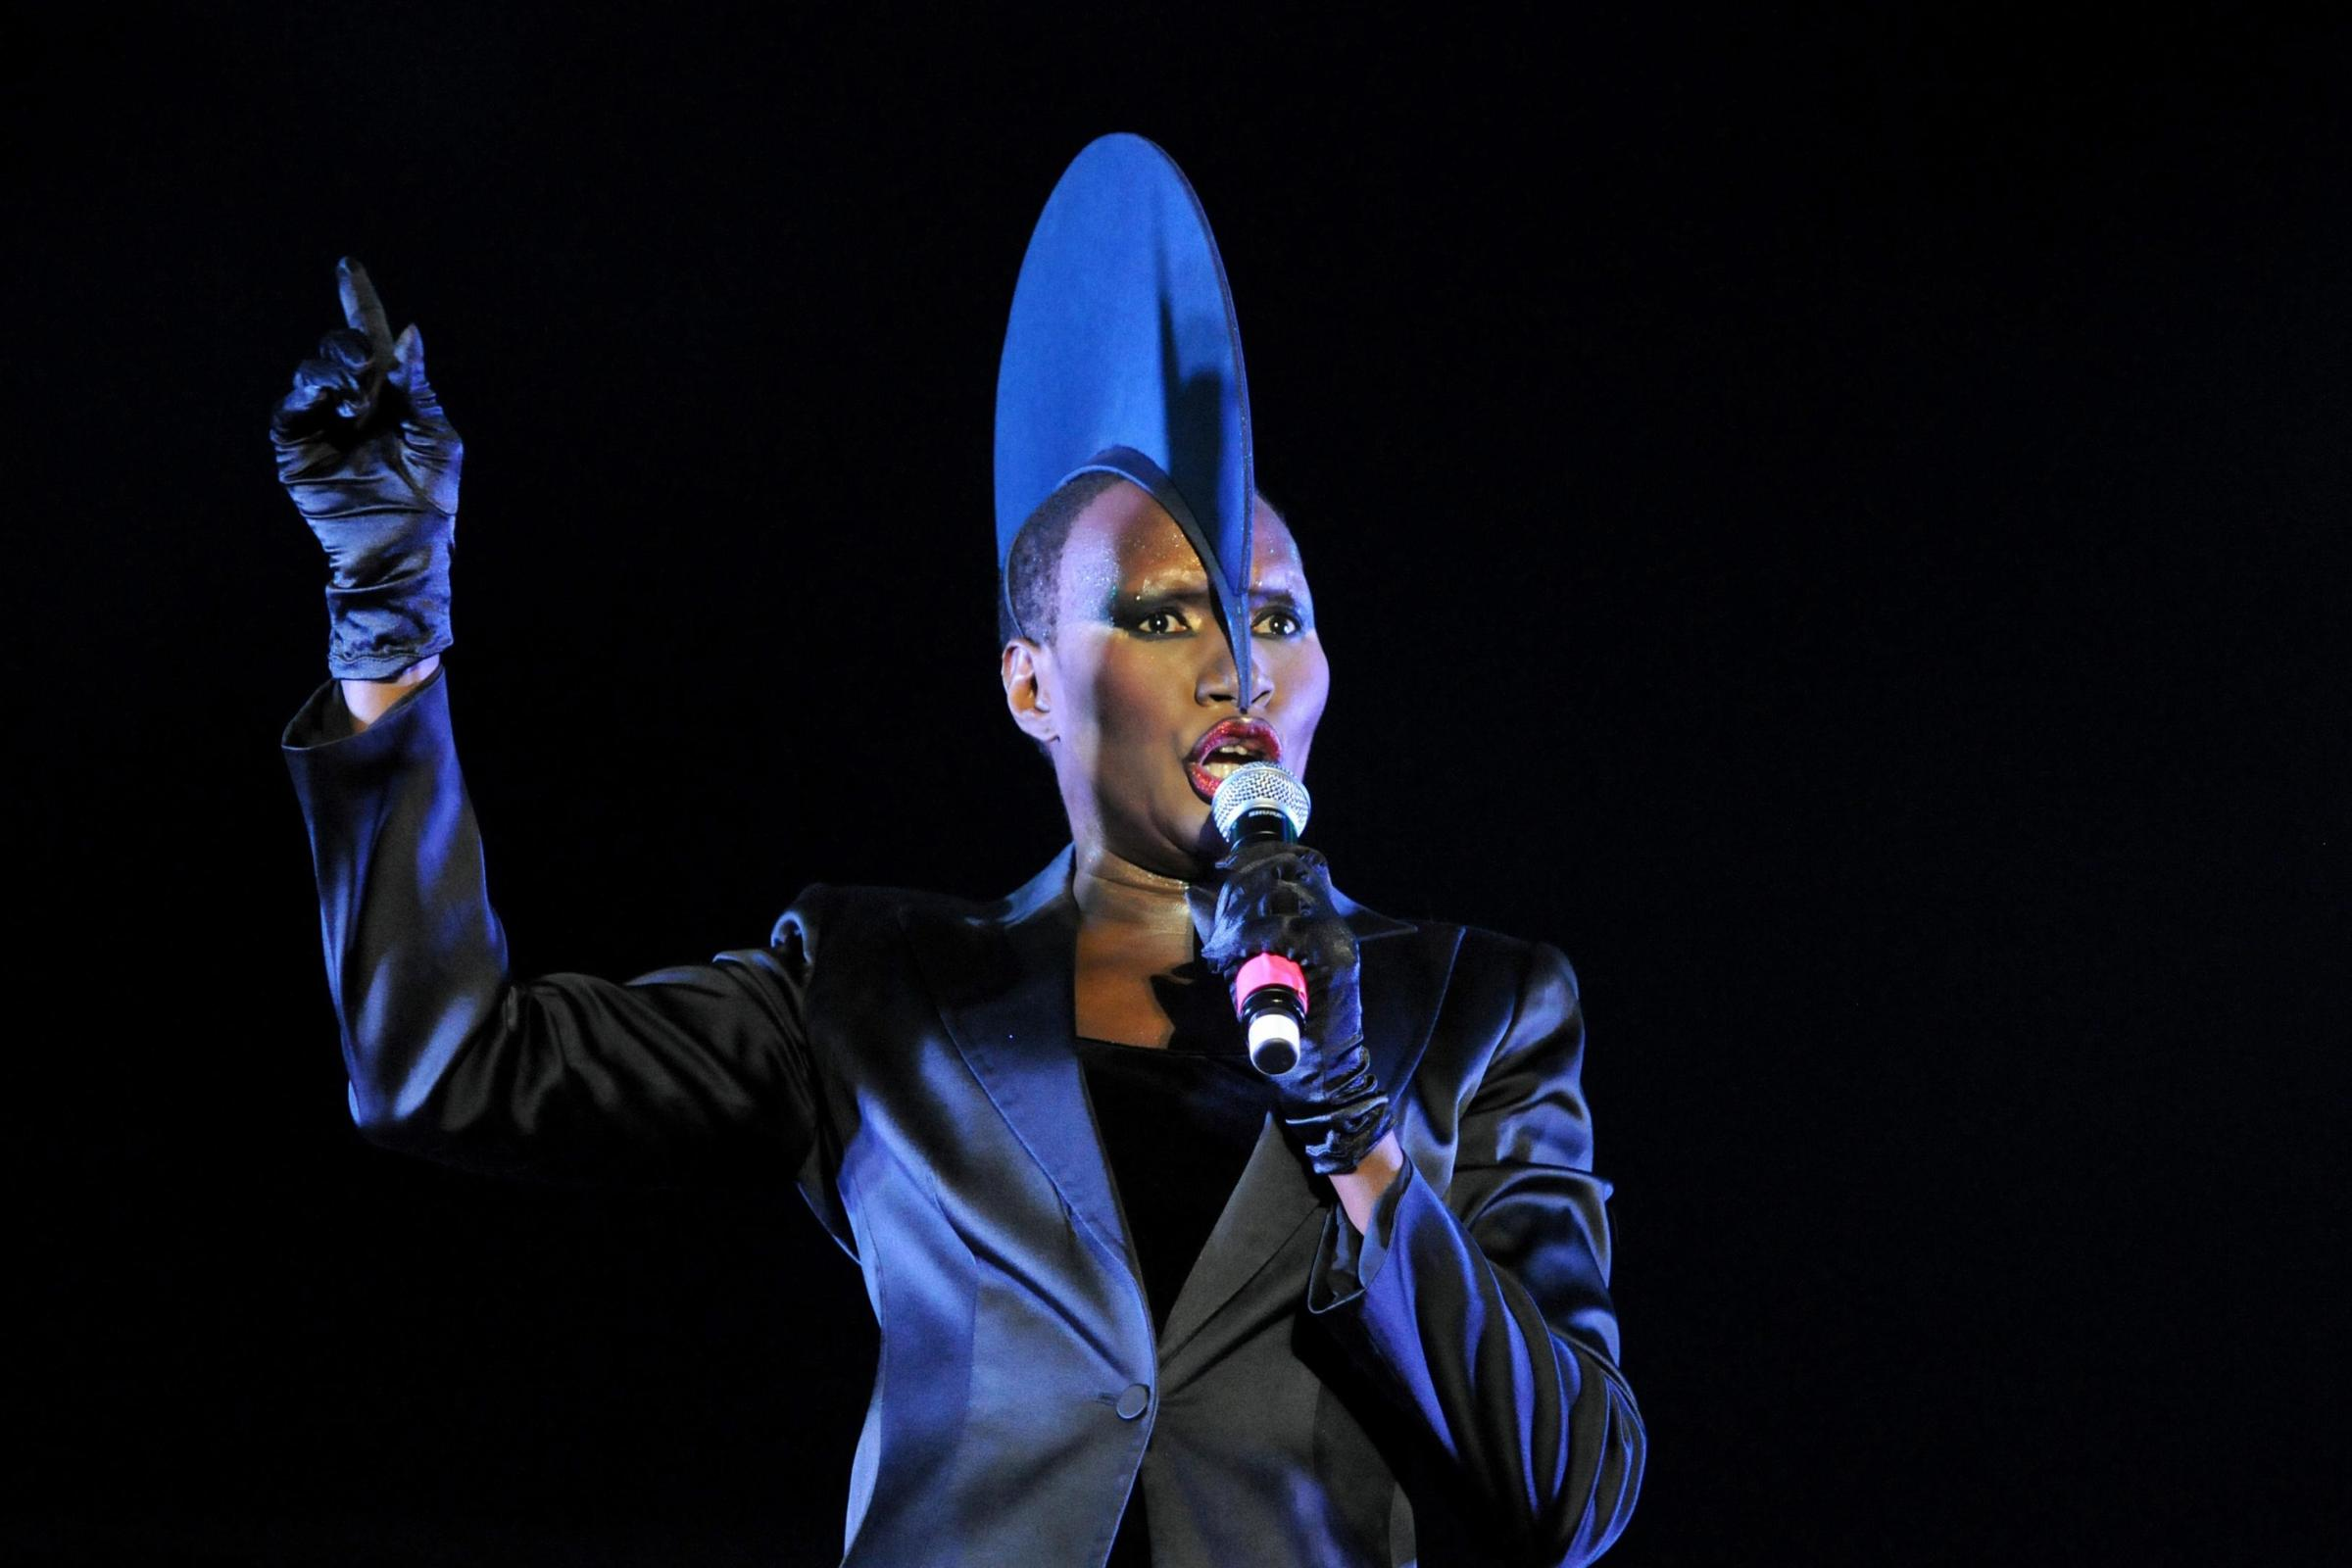 PA File Photo of Grace Jones performing at LoveBox in London, 2010. See PA Feature NOSTALGIA Bond Girls. Picture credit should read: PA Archive/PA Photos. WARNING: This picture must only be used to accompany PA Feature NOSTALGIA Bond Girls